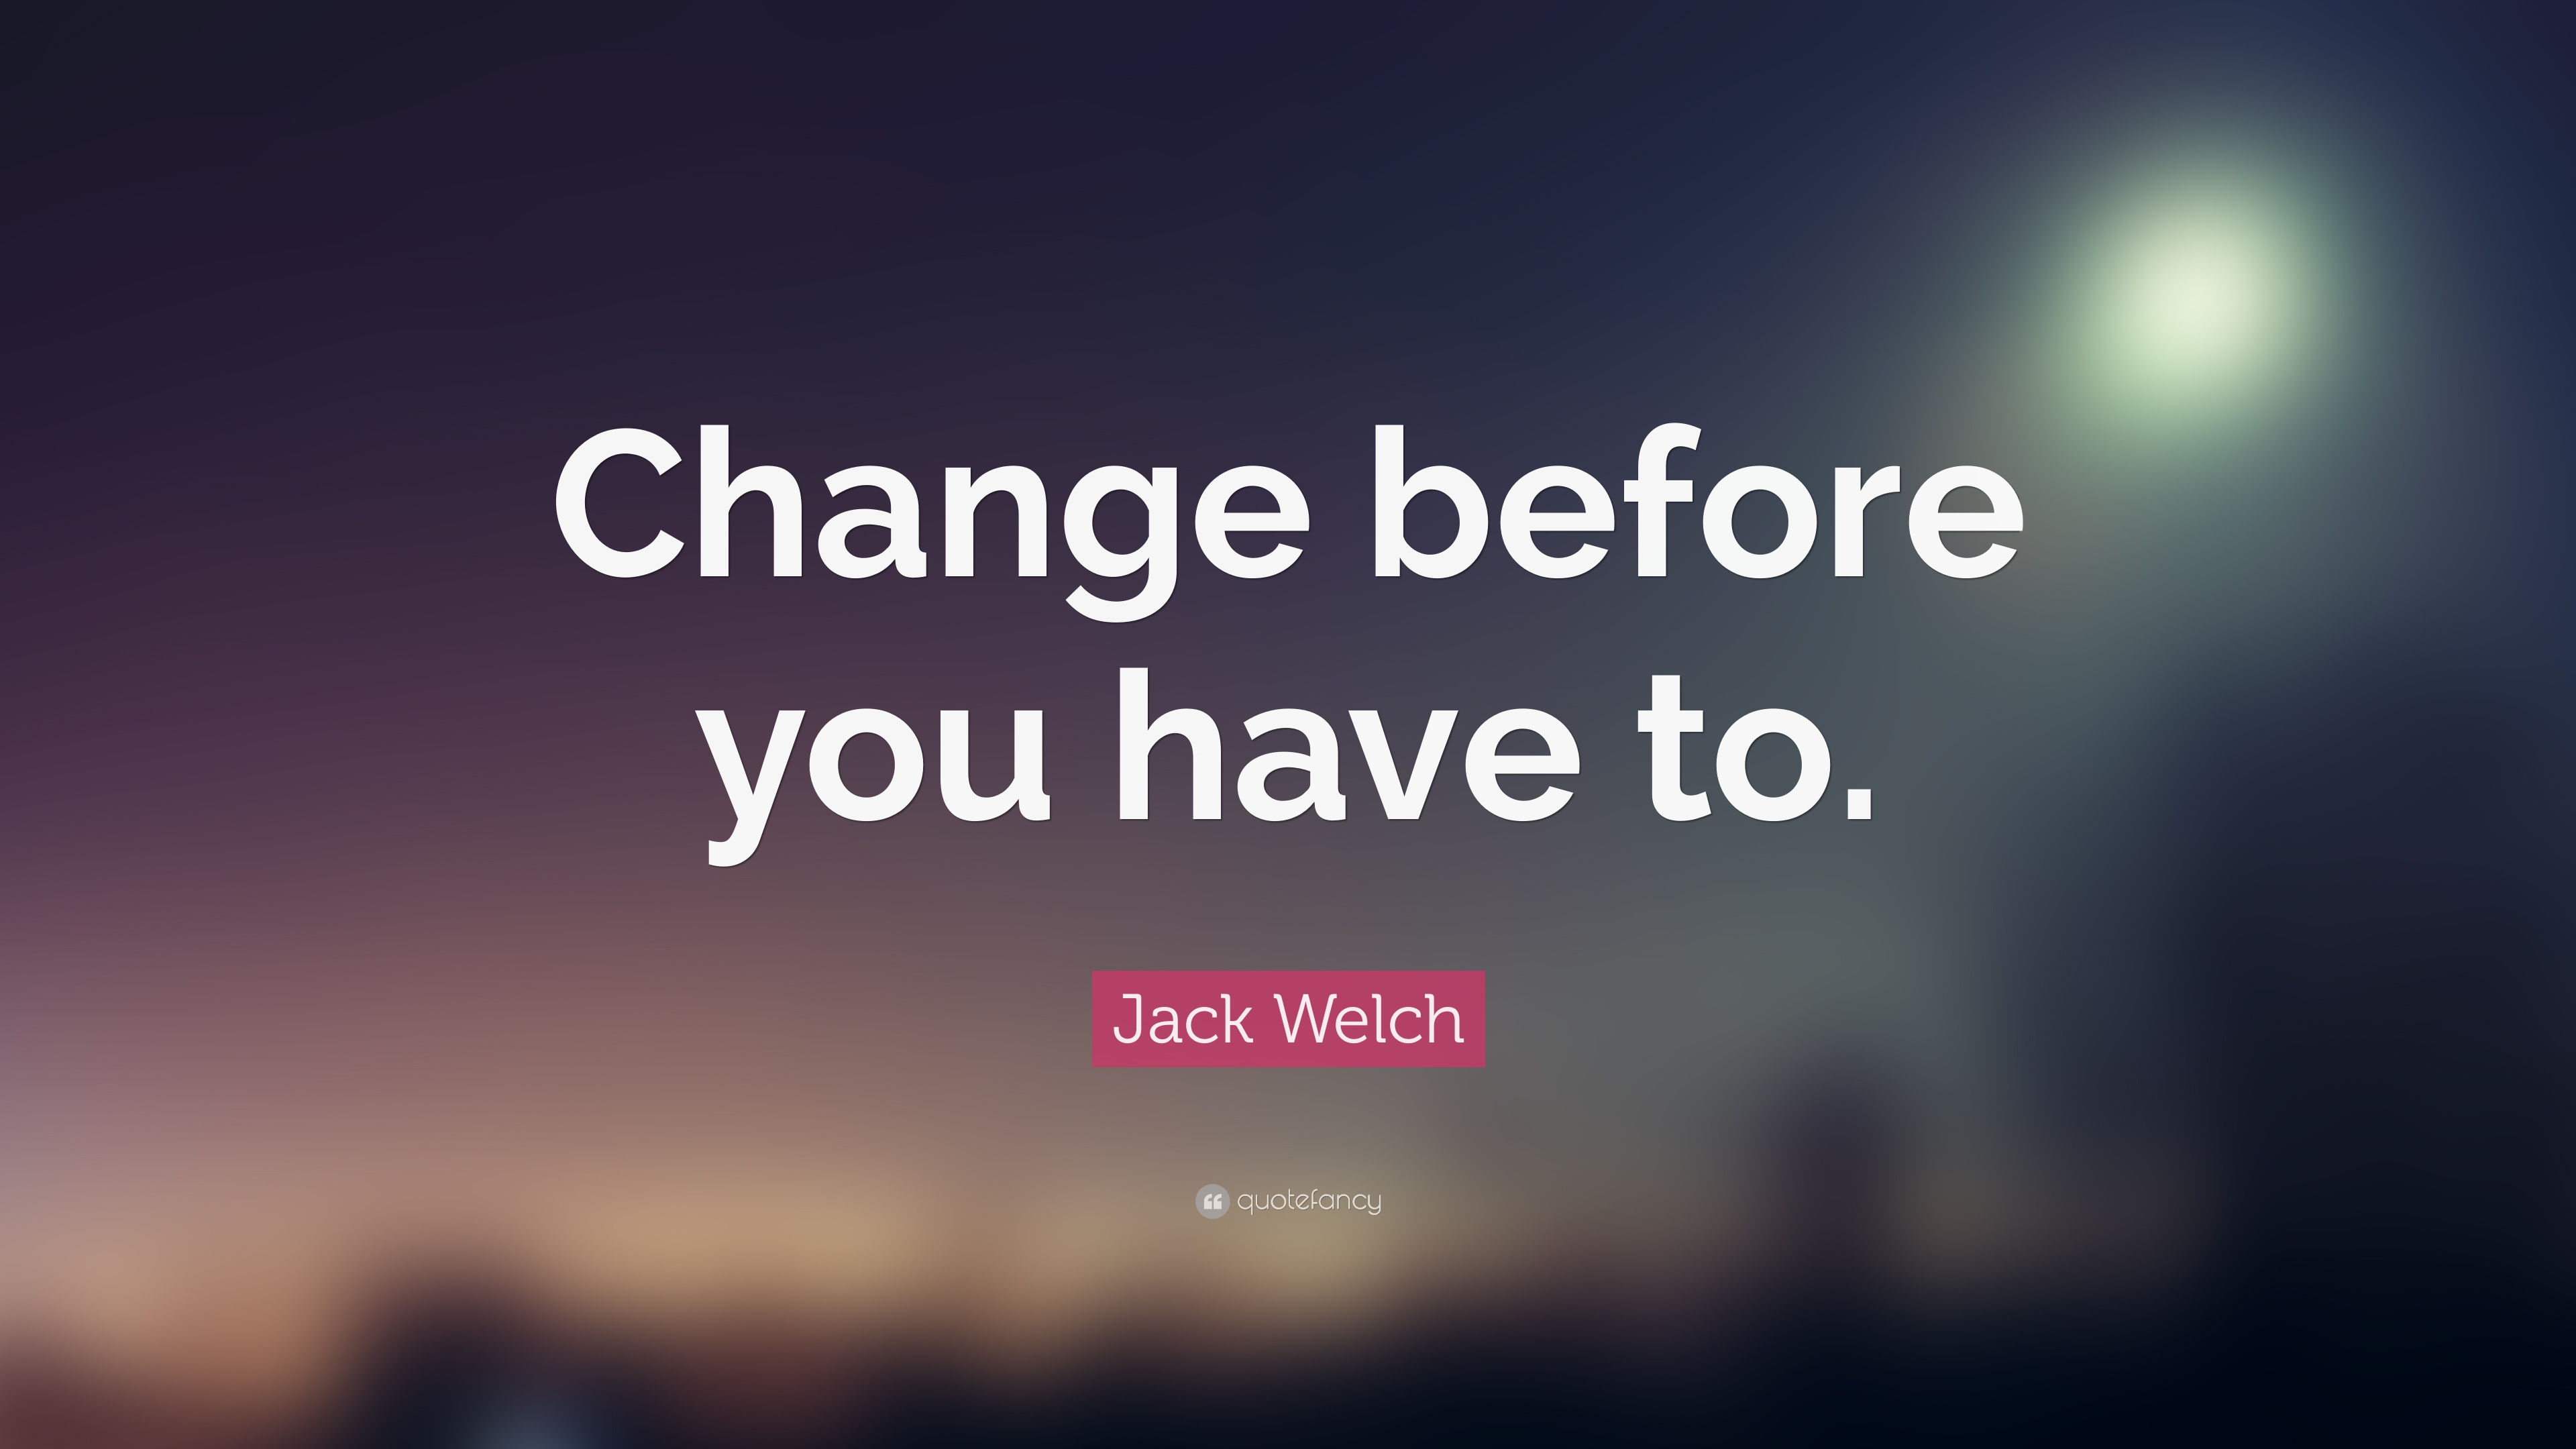 """Jack Welch Quotes Fair Jack Welch Quote """"Change Before You Have To."""" 22 Wallpapers"""